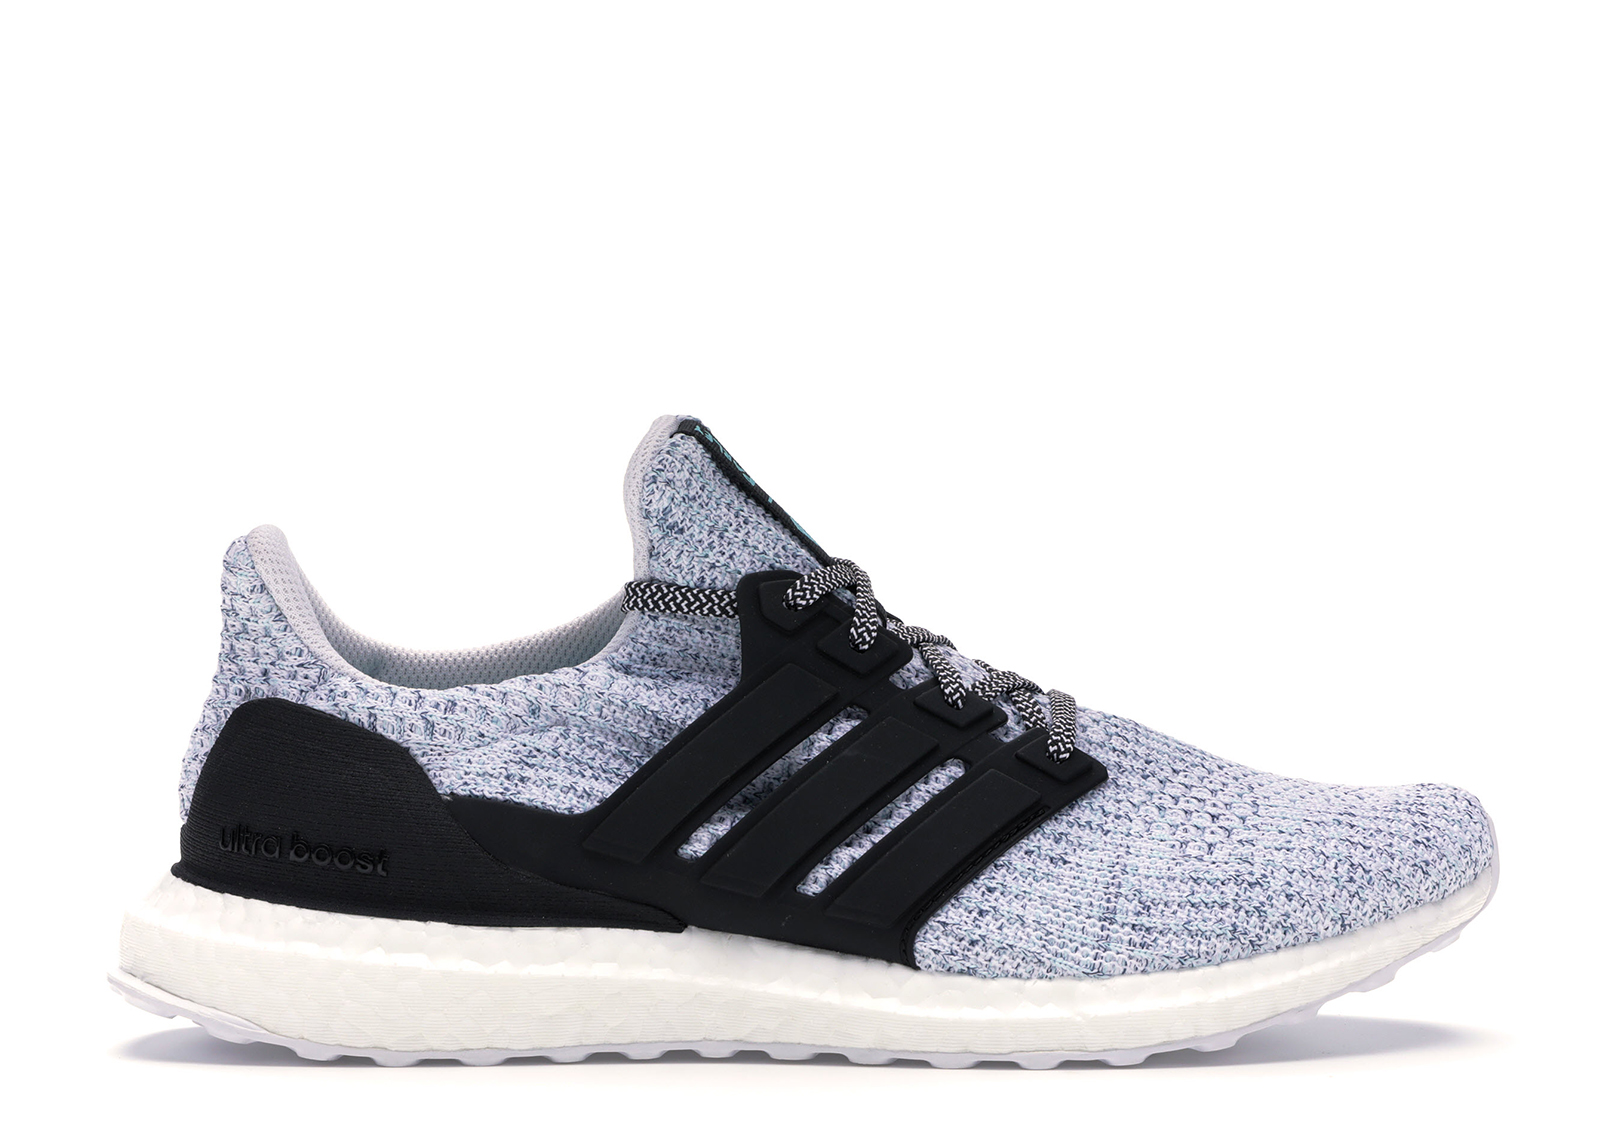 c2fbfef6693 ... purchase adidas ultra boost 4.0 parley white blue w bc0251 84b45 7d11e